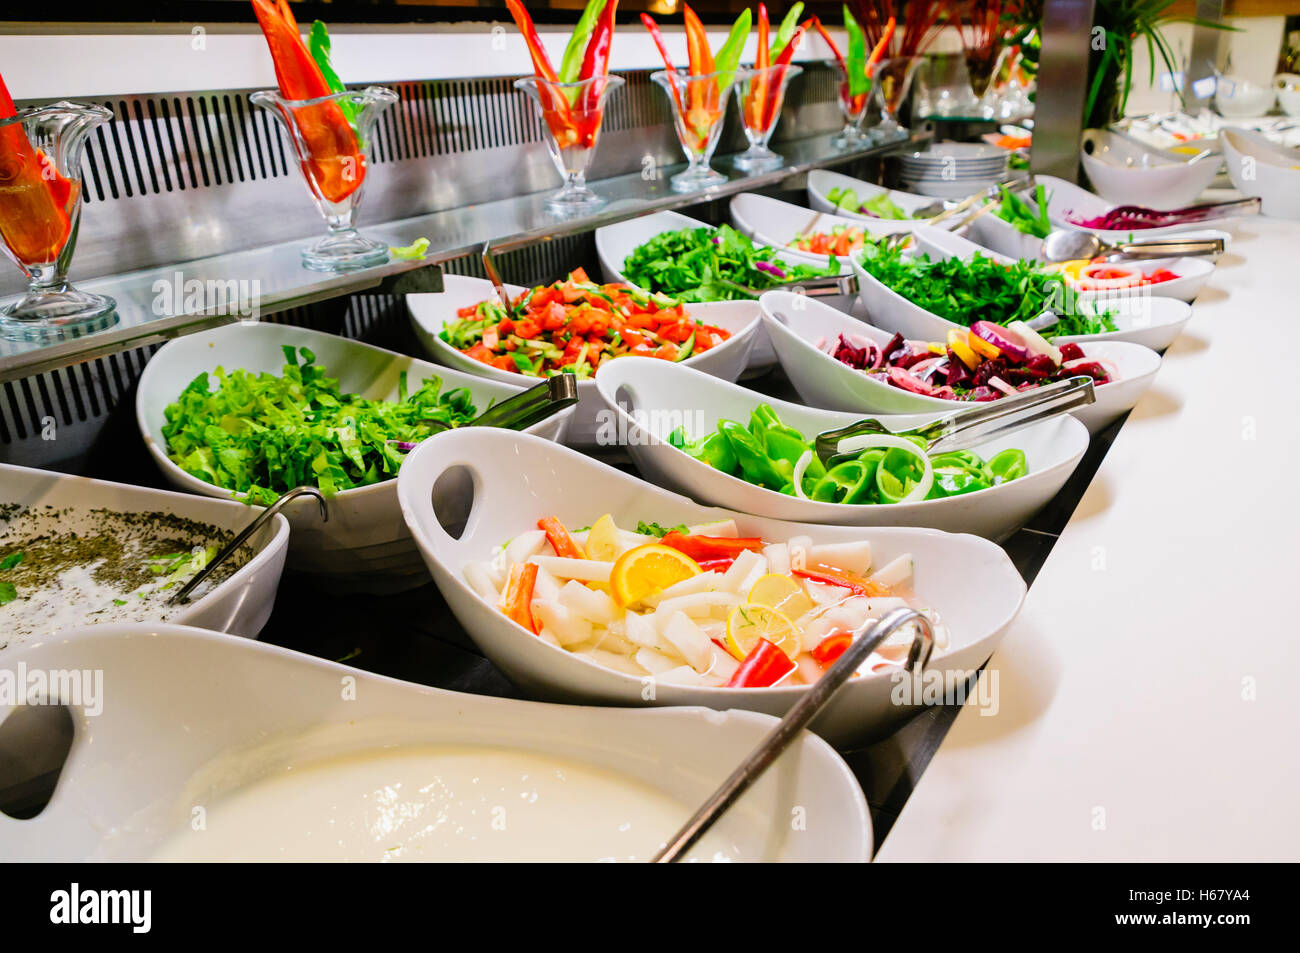 Bowls of salad at the buffet of a hotel restaurant Stock Photo